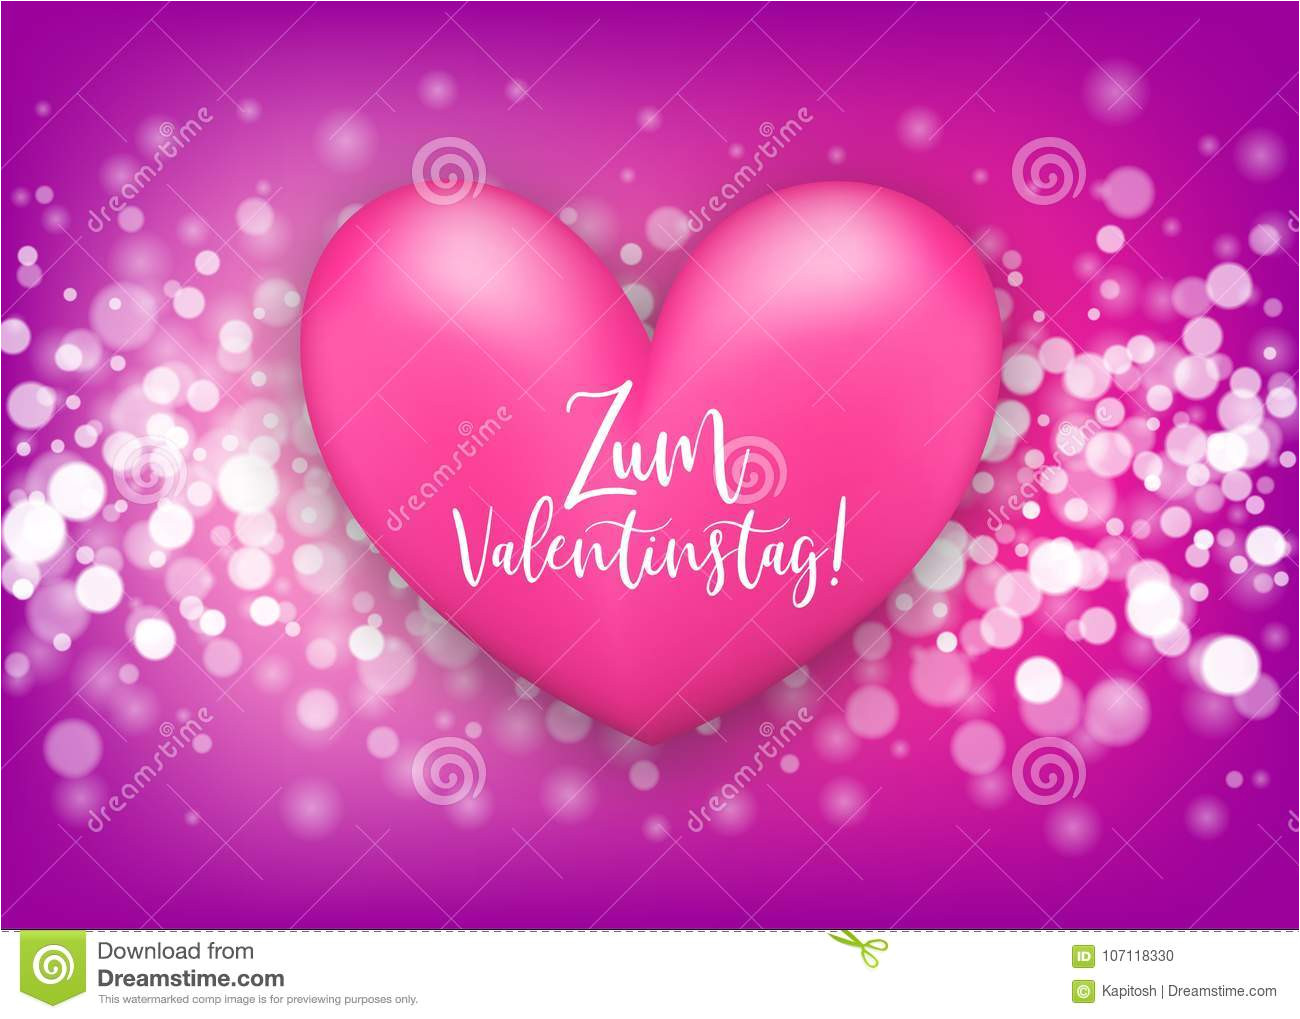 happy valentines day heart greeting card happy valentines day zum valentinstag german language realistic d heart romantic sparkle 107118330 jpg